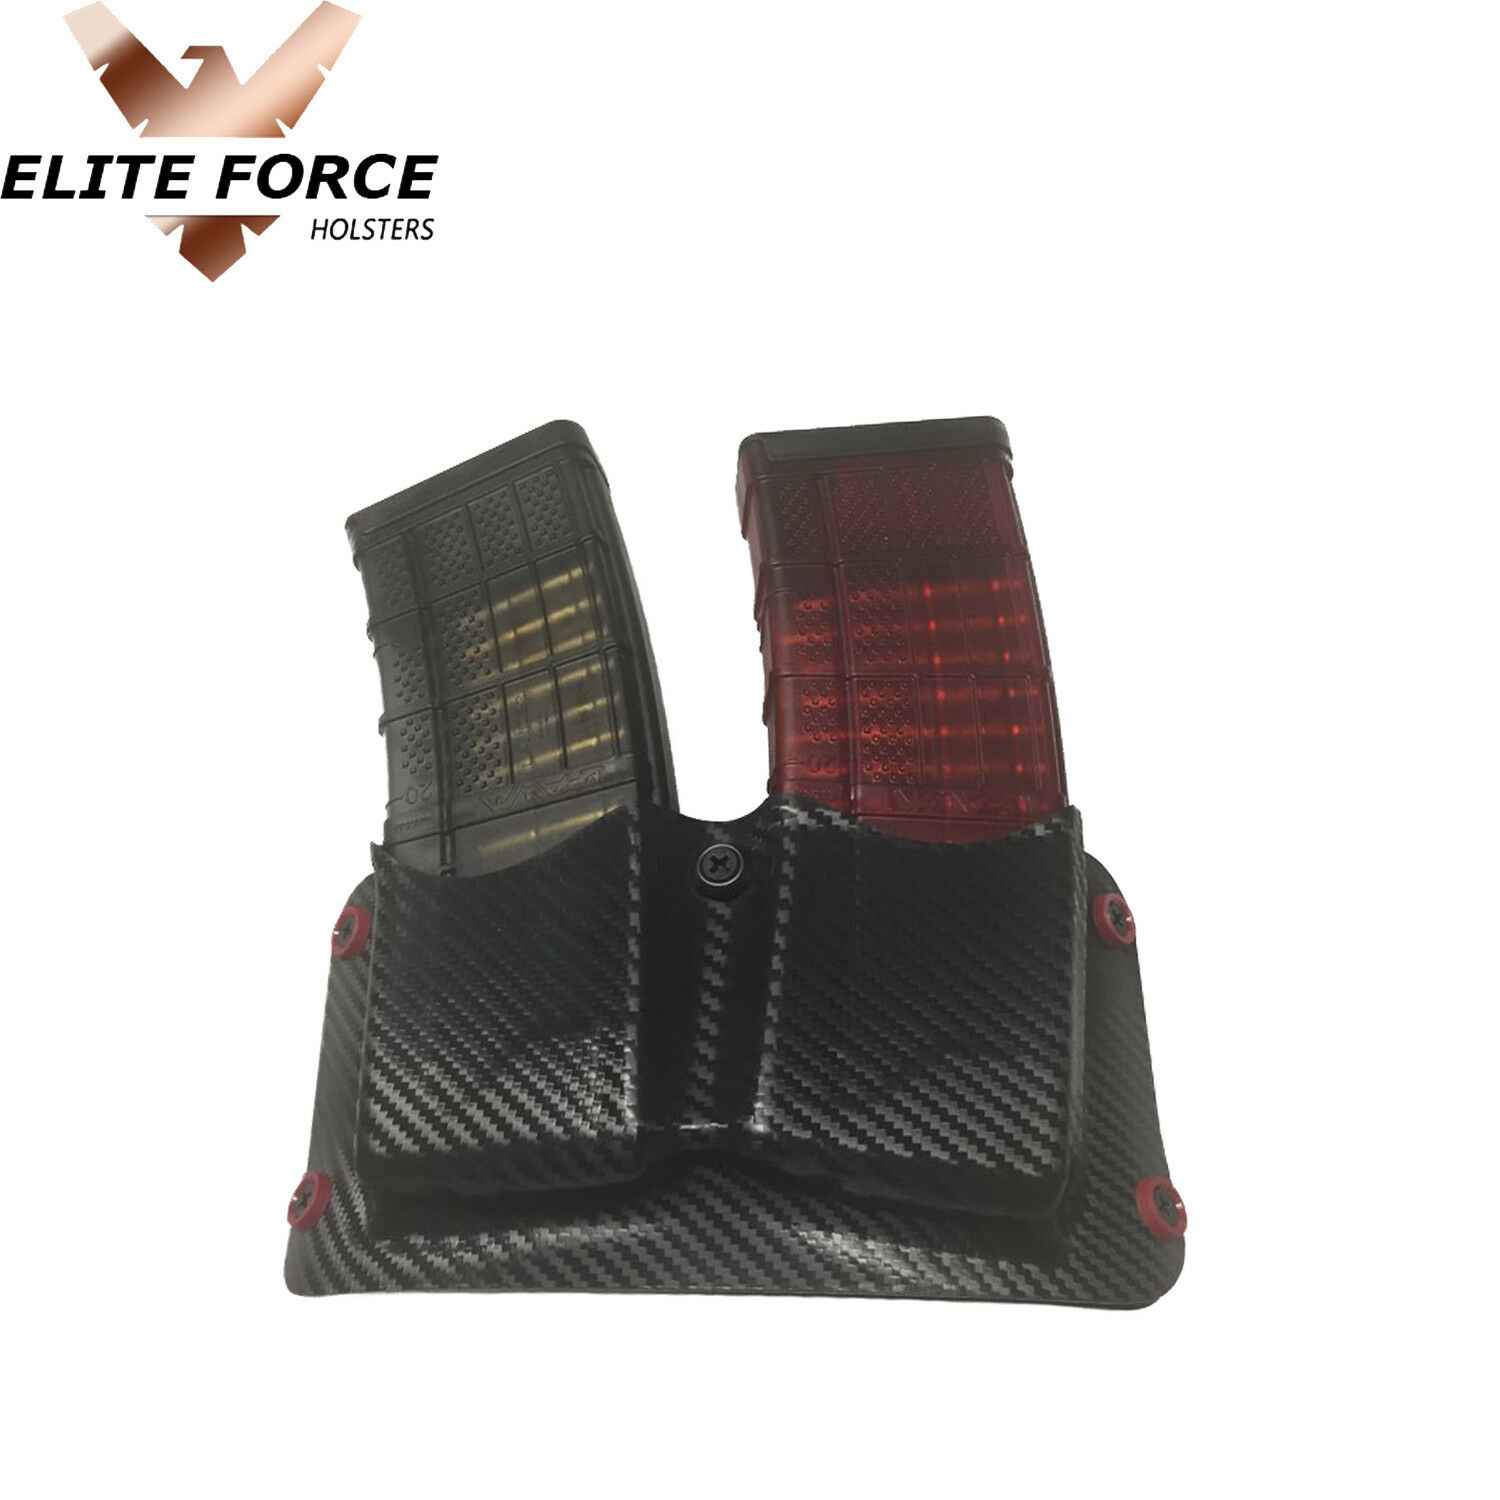 Dual Kydex OWB Holster Fits Lancer L5 Magazines, Double Mag Holster